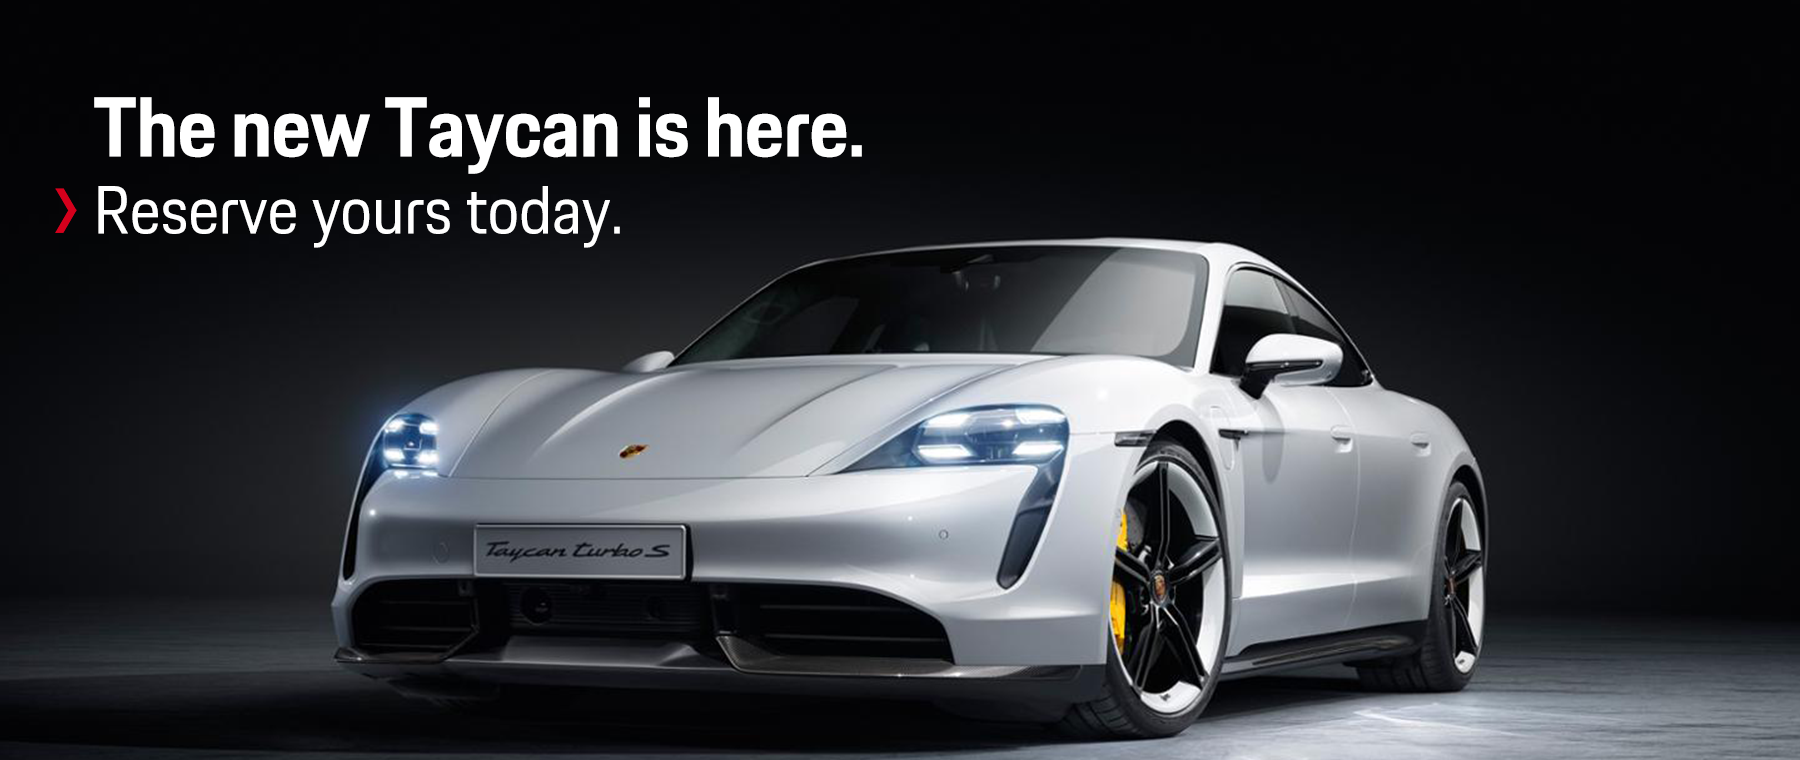 Reserve the new Porsche Taycan